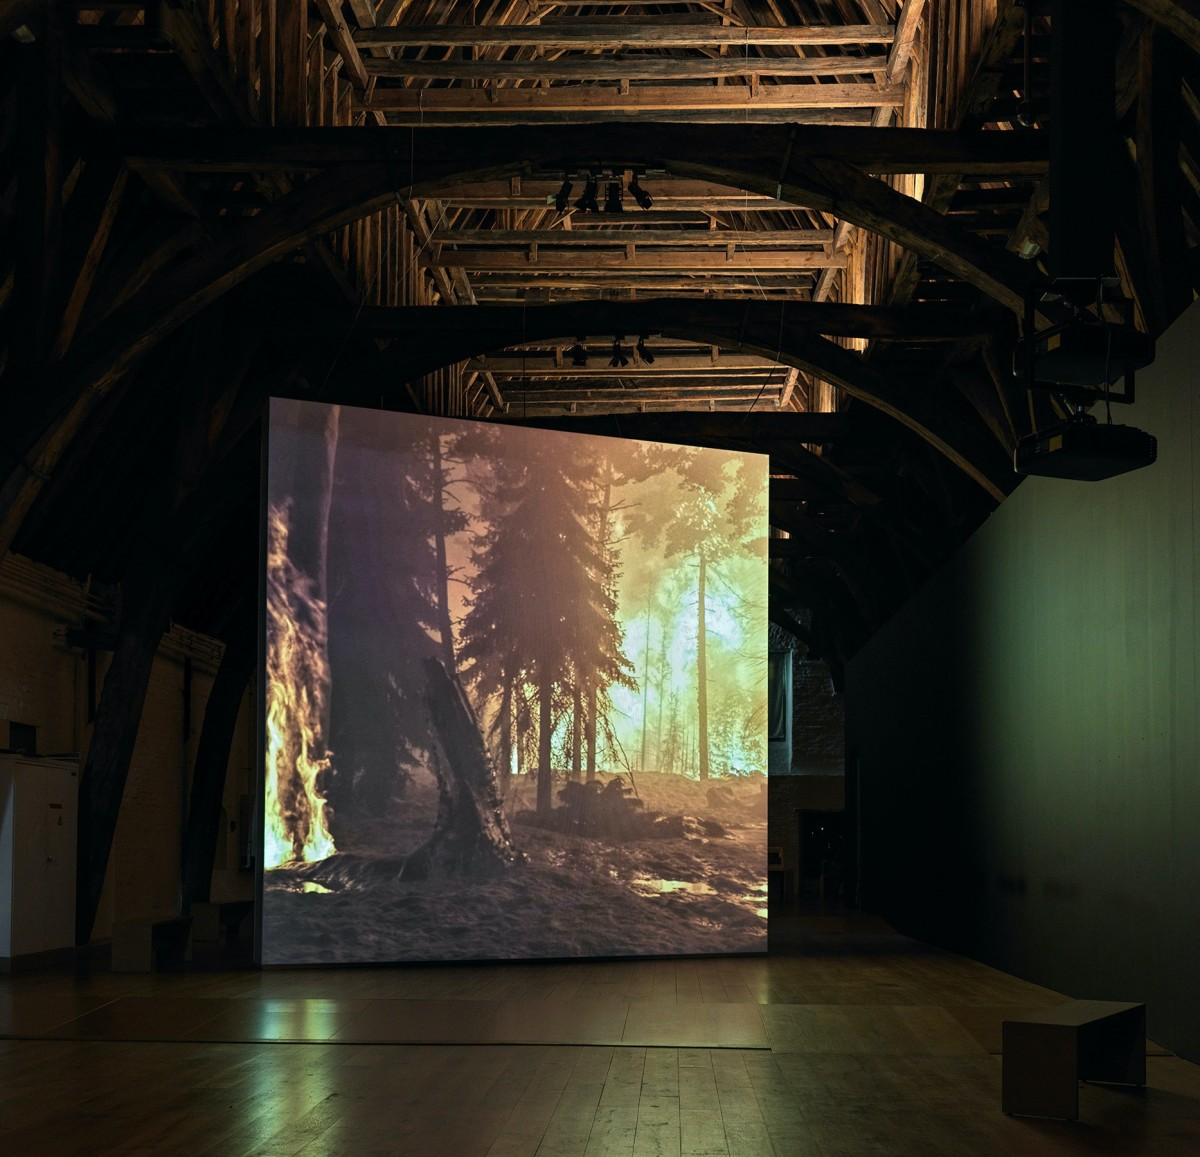 David Claerbout, Wildfire (meditation on fire), 2019-2020, single channel video projection, 3D animation (stereo audio, color), duration: 24 min, edition of 7. Exhibition view: Memling Now: Hans Memling in contemporary art, Sint Janshospitaal, Bruges, 2020. Collection Musea Brugge. Photo © Dominique Provost